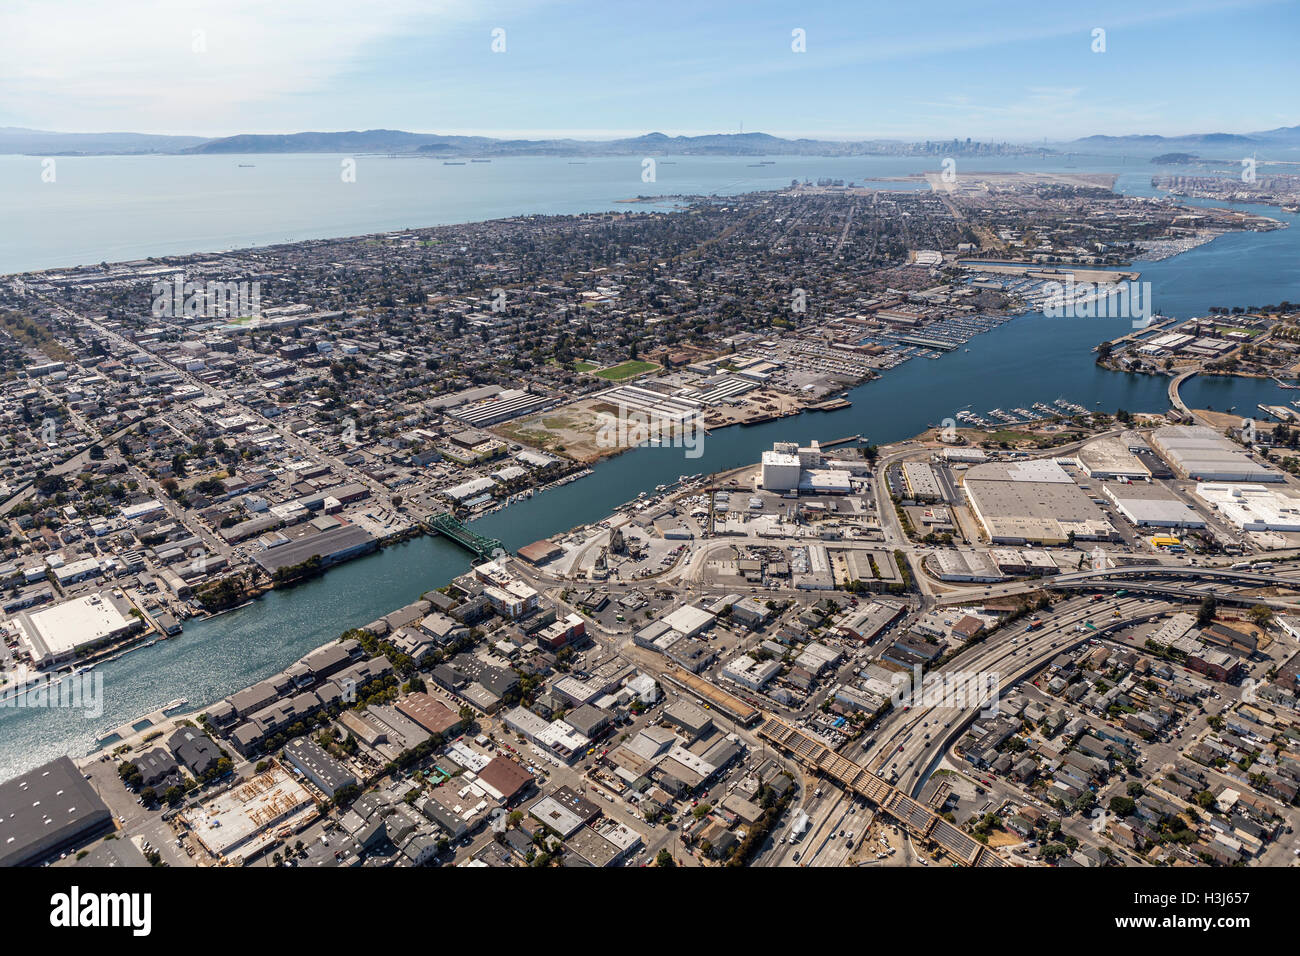 Aerial view of Alameda Island and the San Francisco Bay. - Stock Image